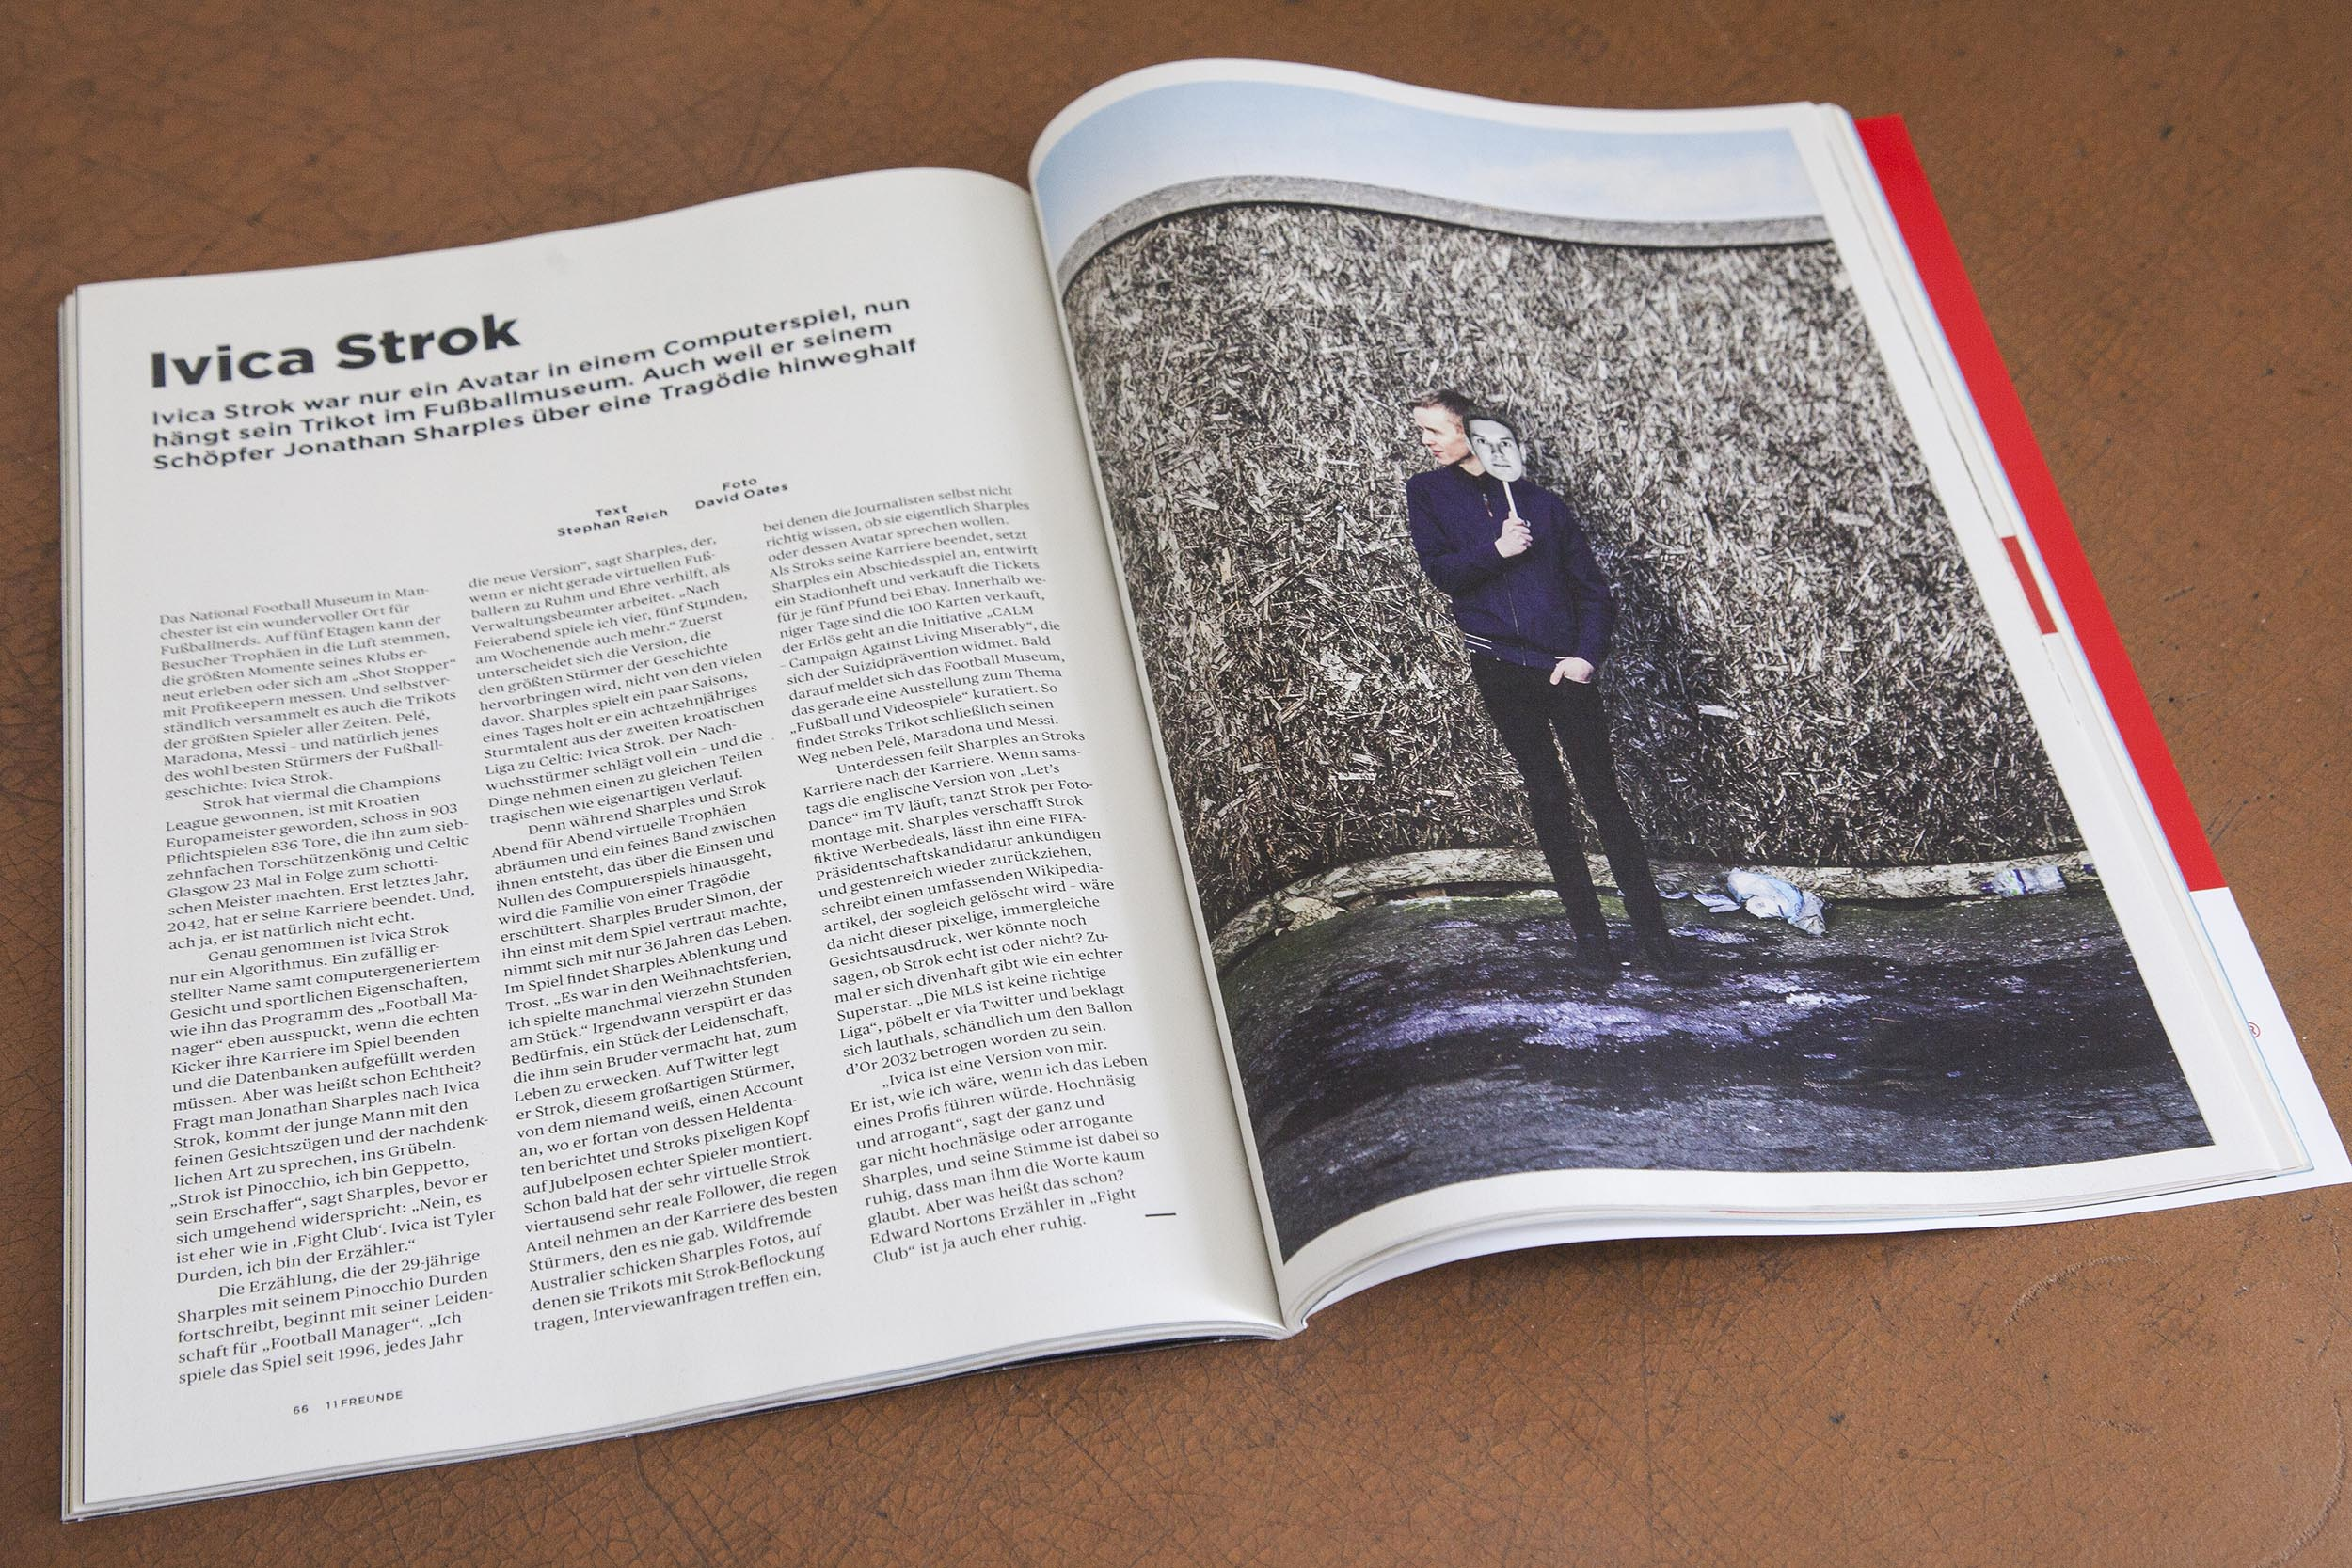 Double page spreads of German football magazine 11 Freunde magazine containing my documentary photography